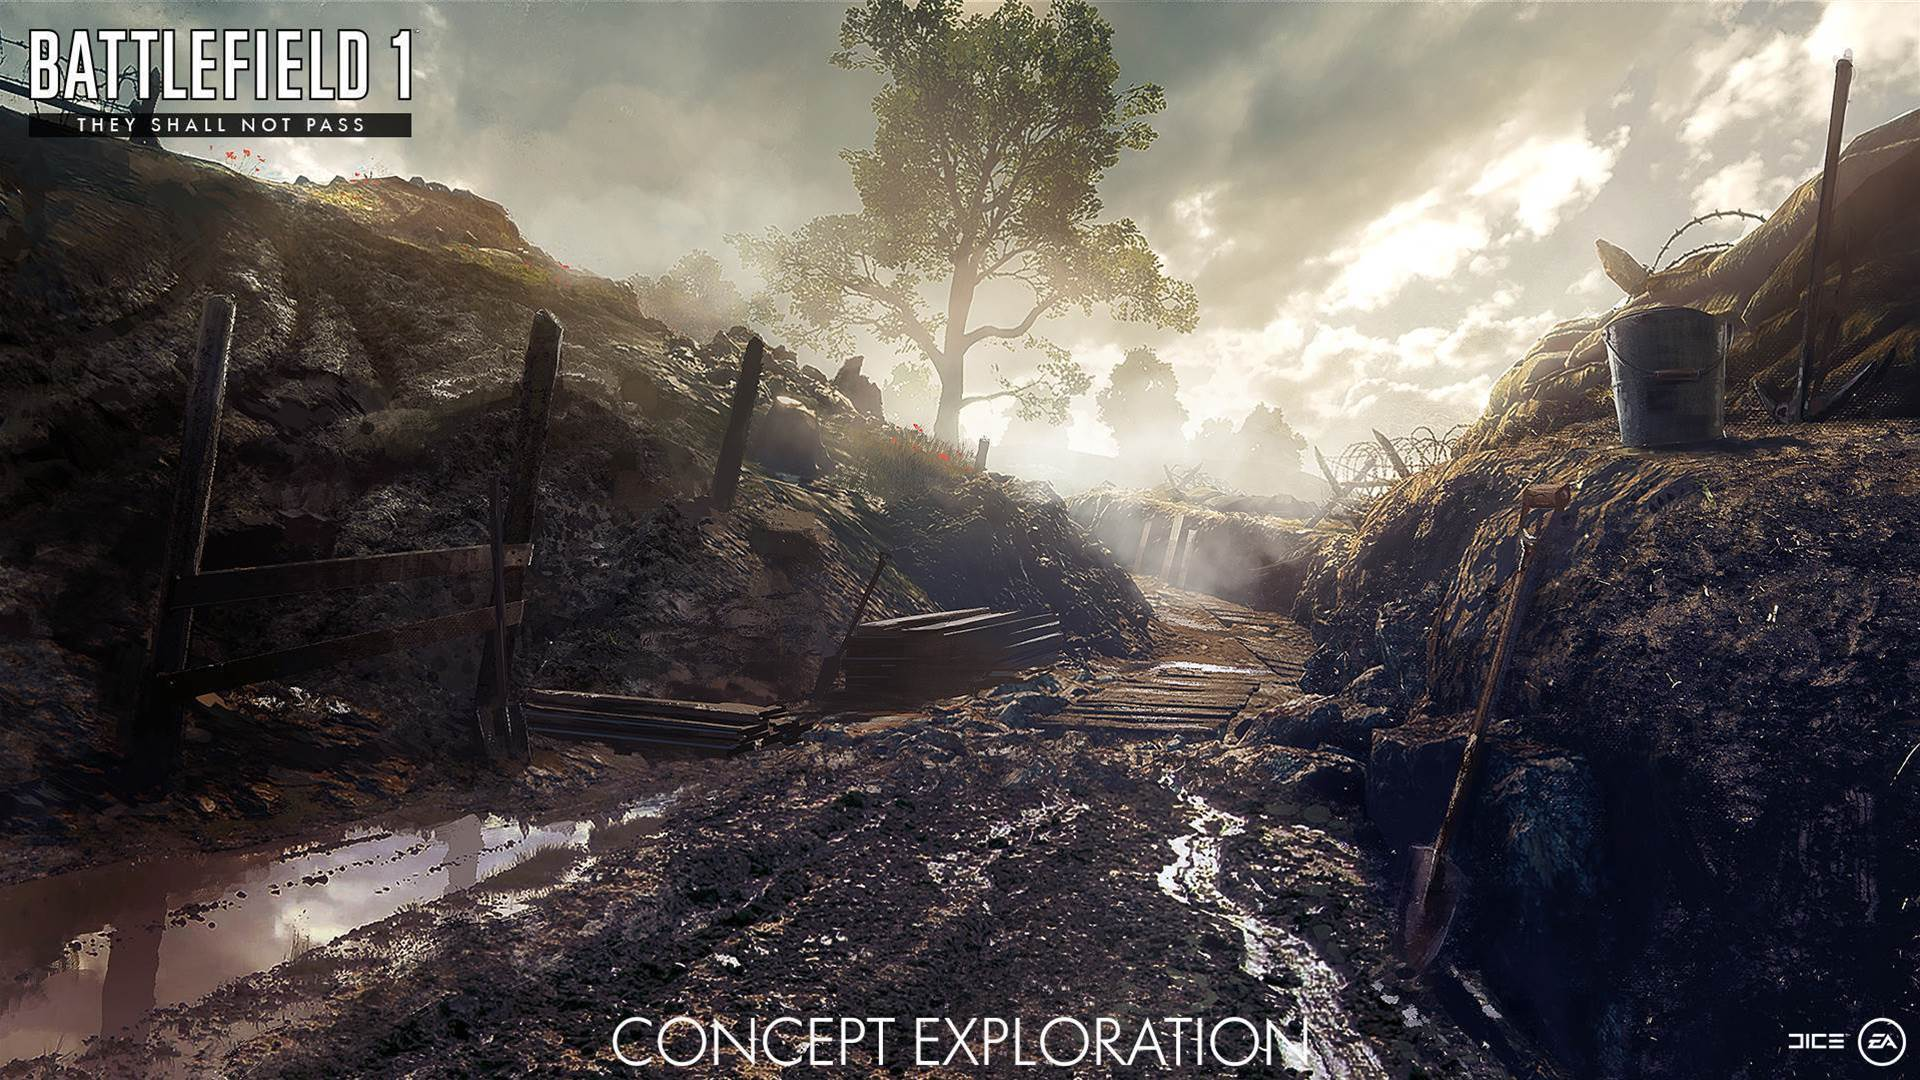 Concept art from Battlefield 1's upcoming They Shall Not Pass DLC